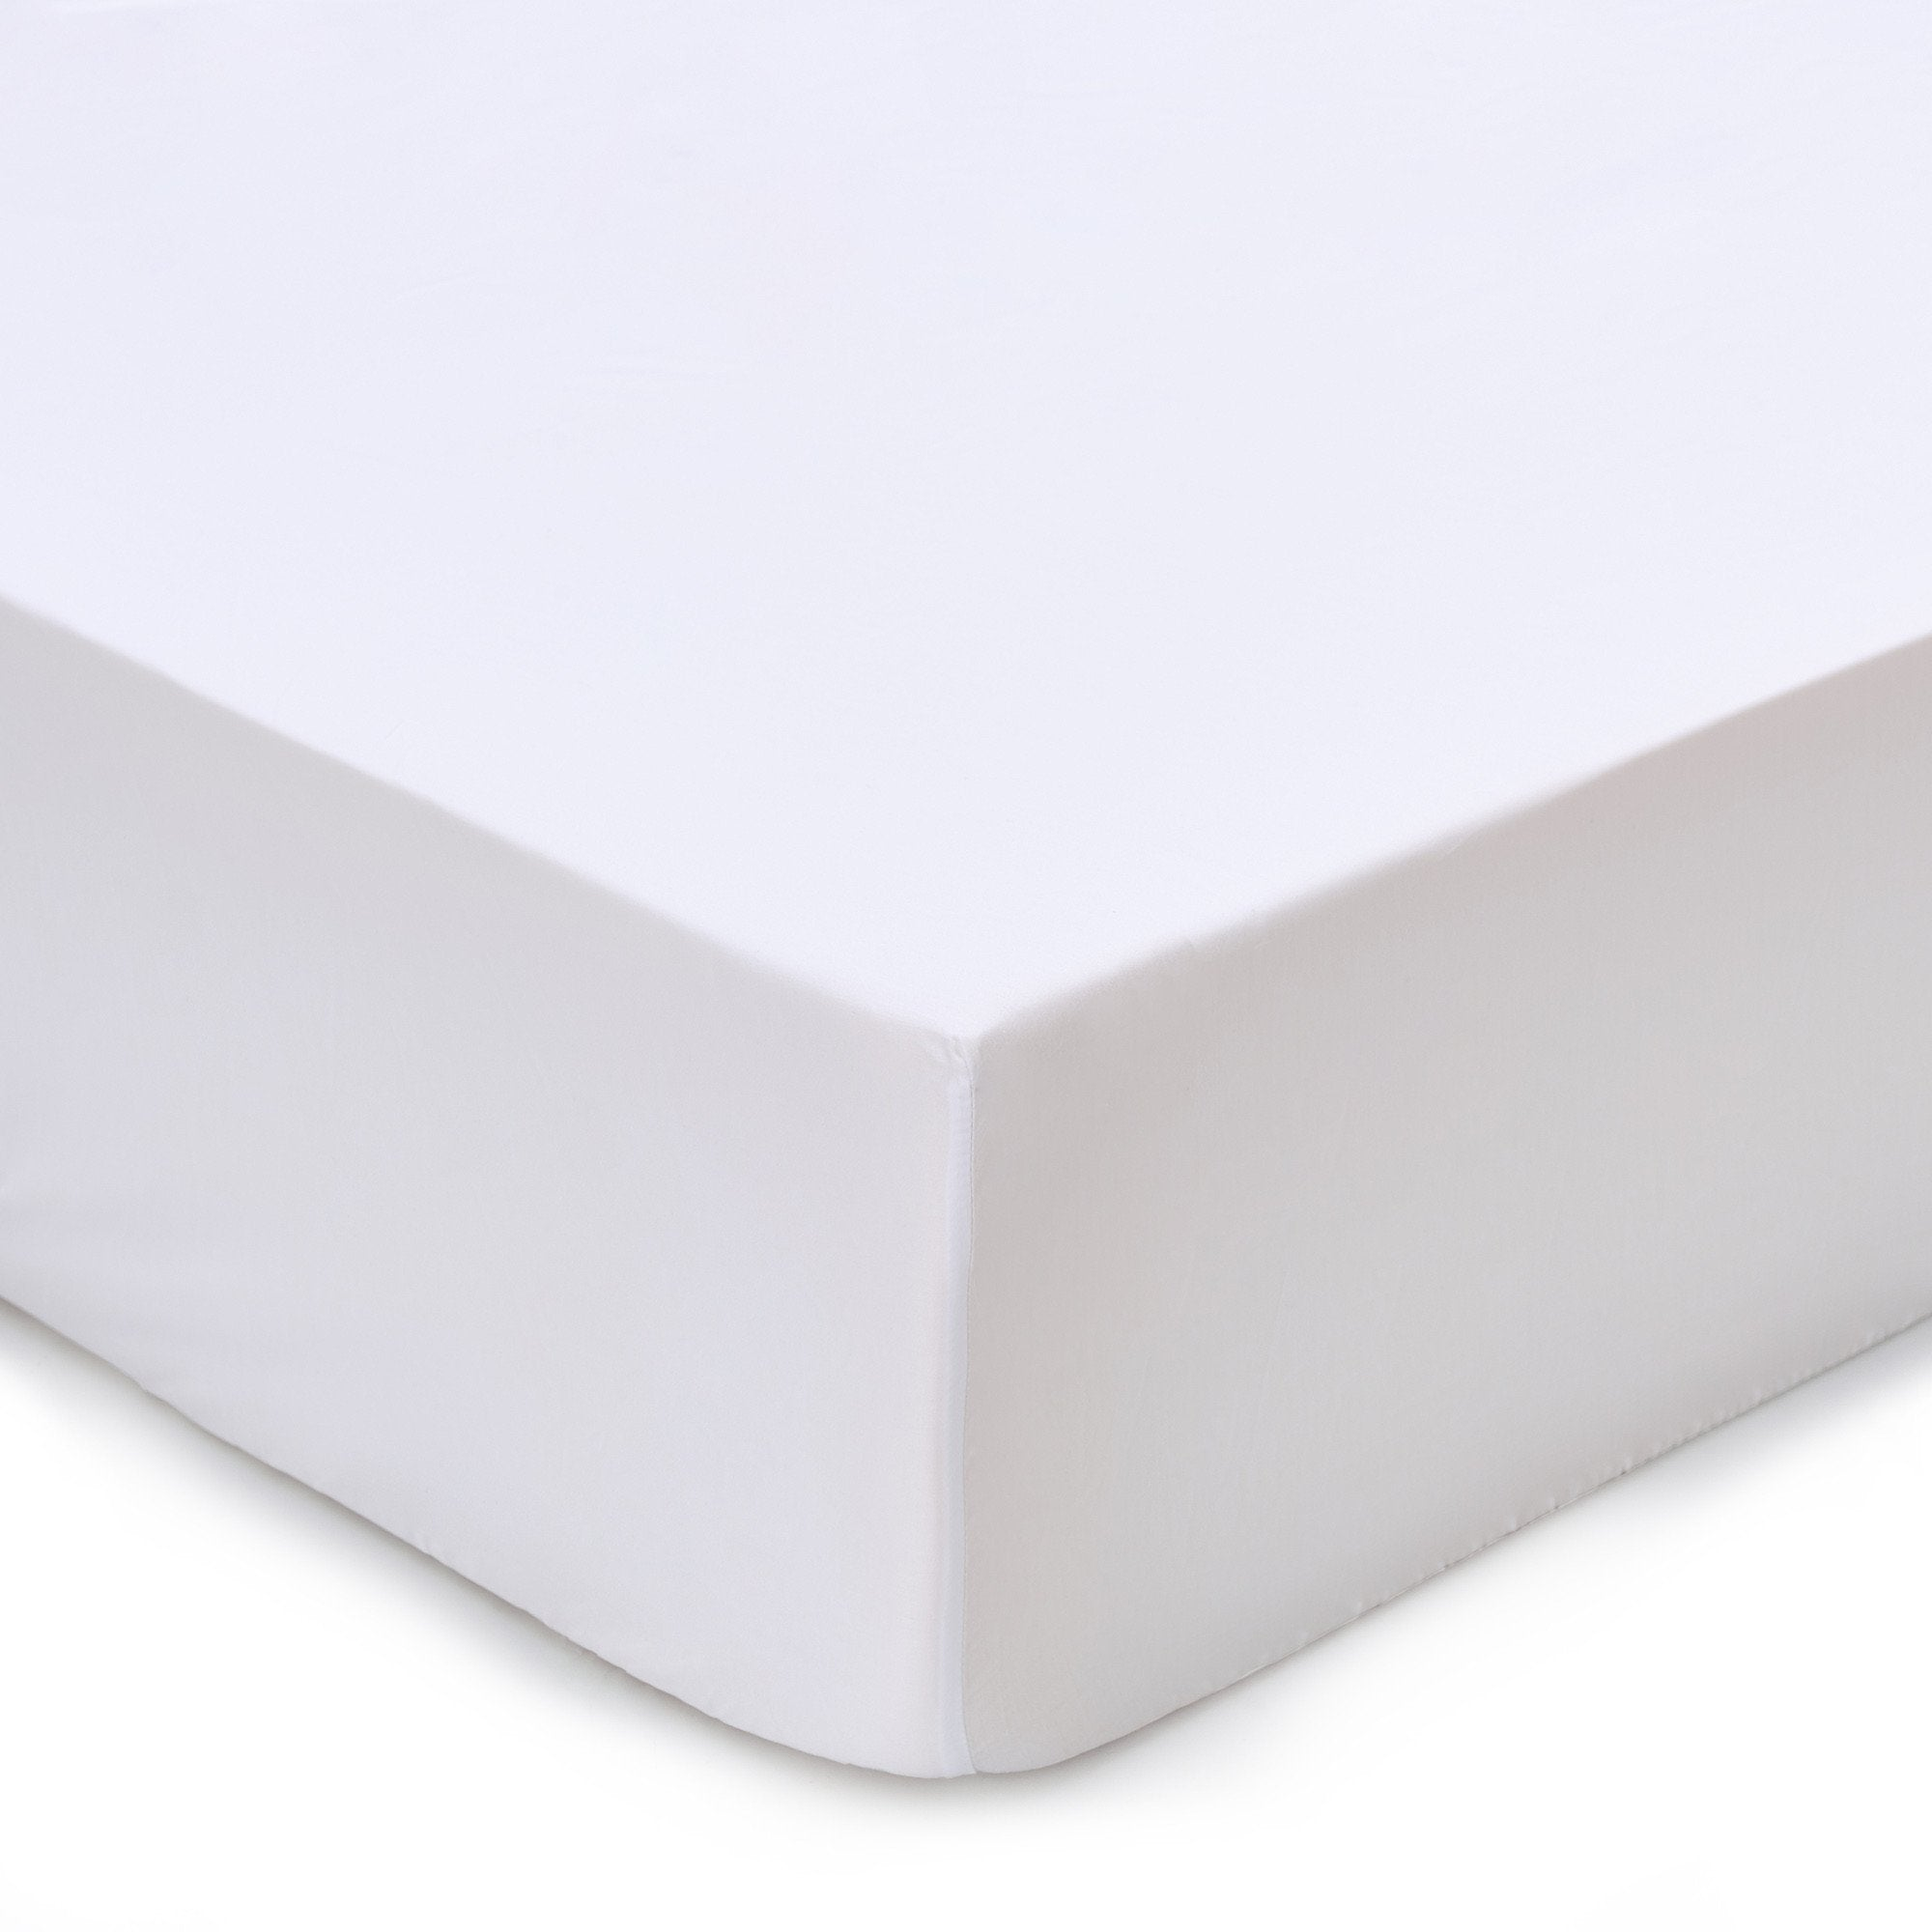 Marseille fitted sheet, white, 100% cotton